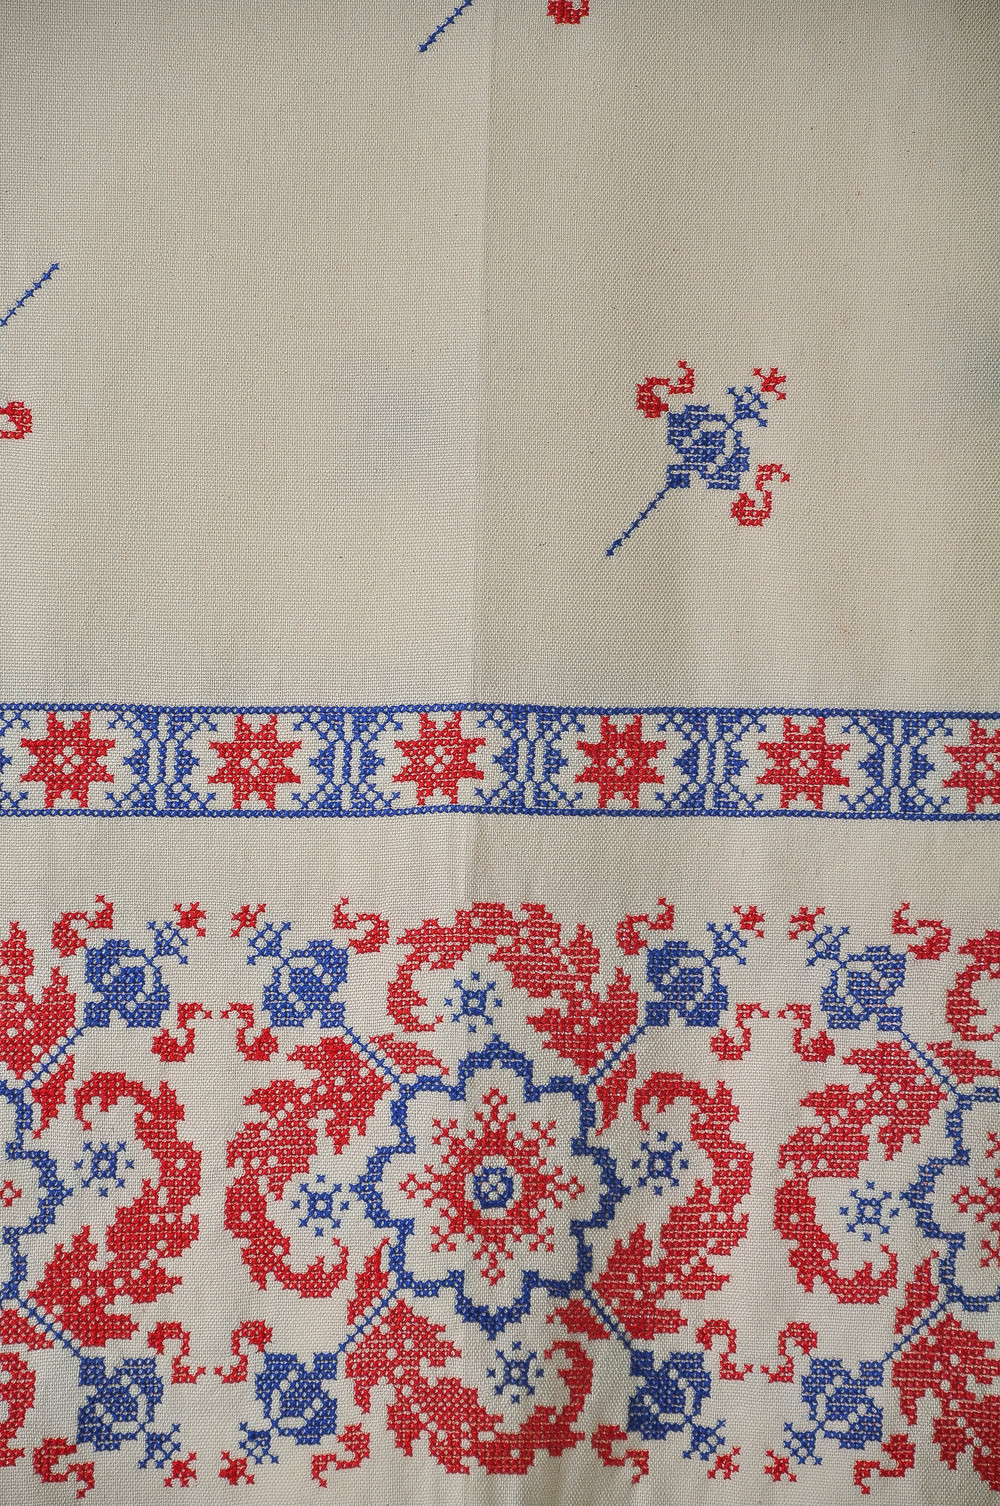 Embroidered Texdtiles from Mexico (16).jpg